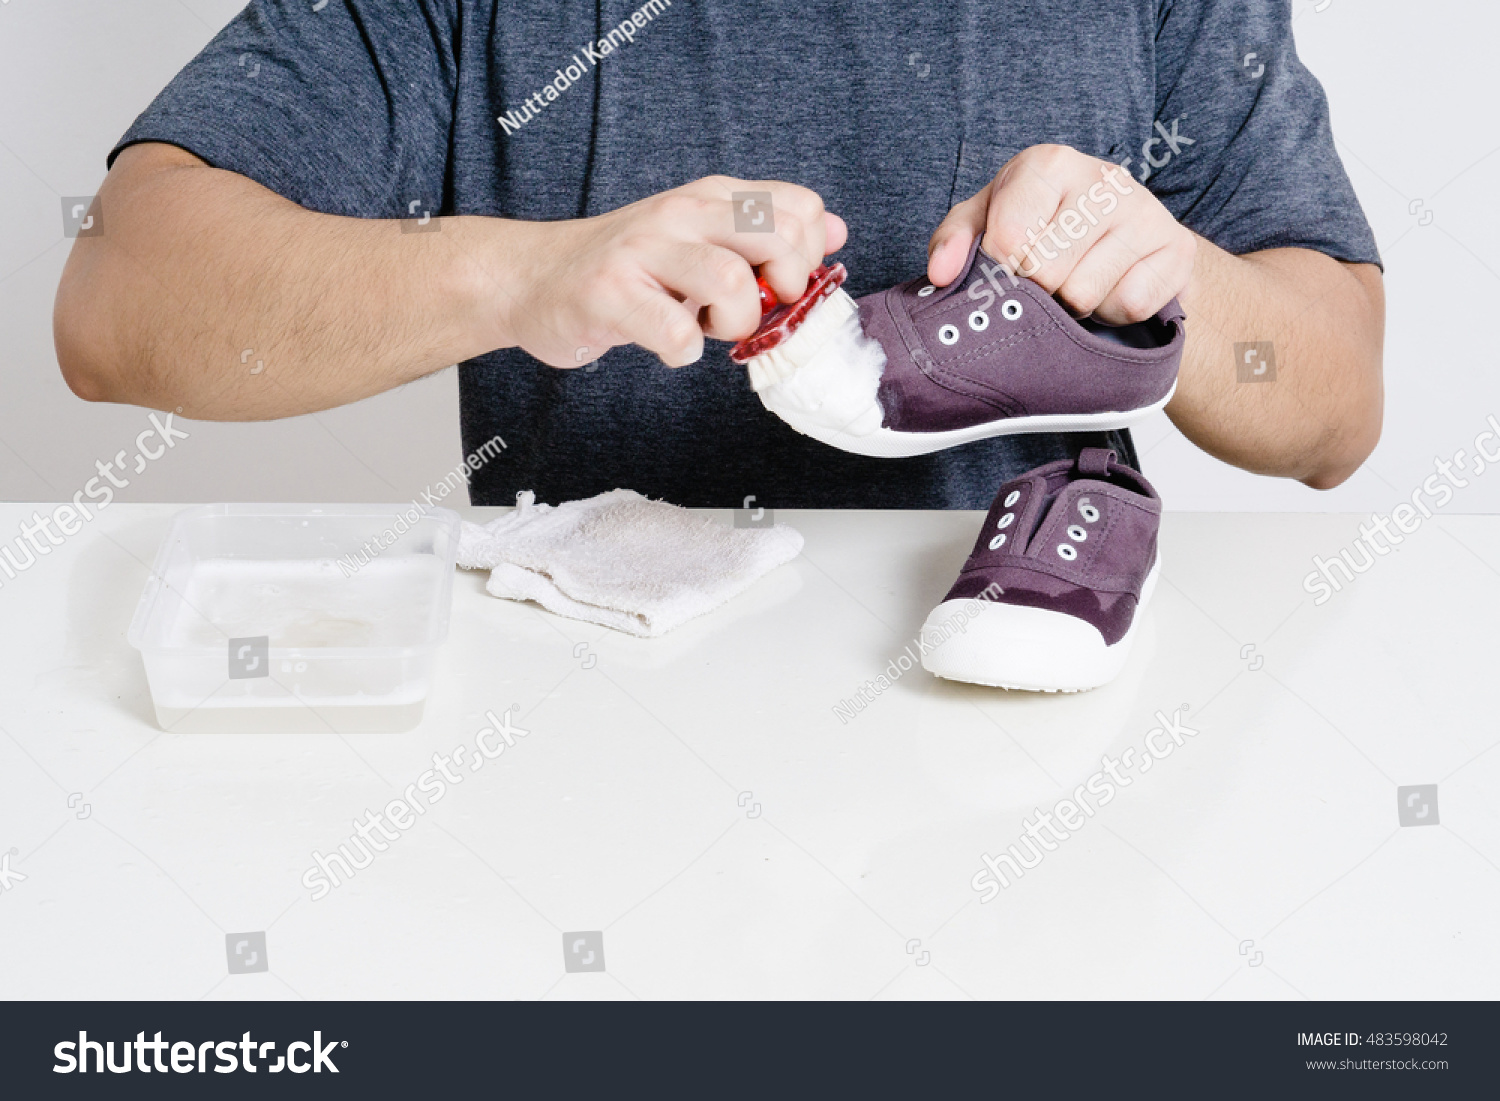 Sneaker Father Cleaning Sneakers His